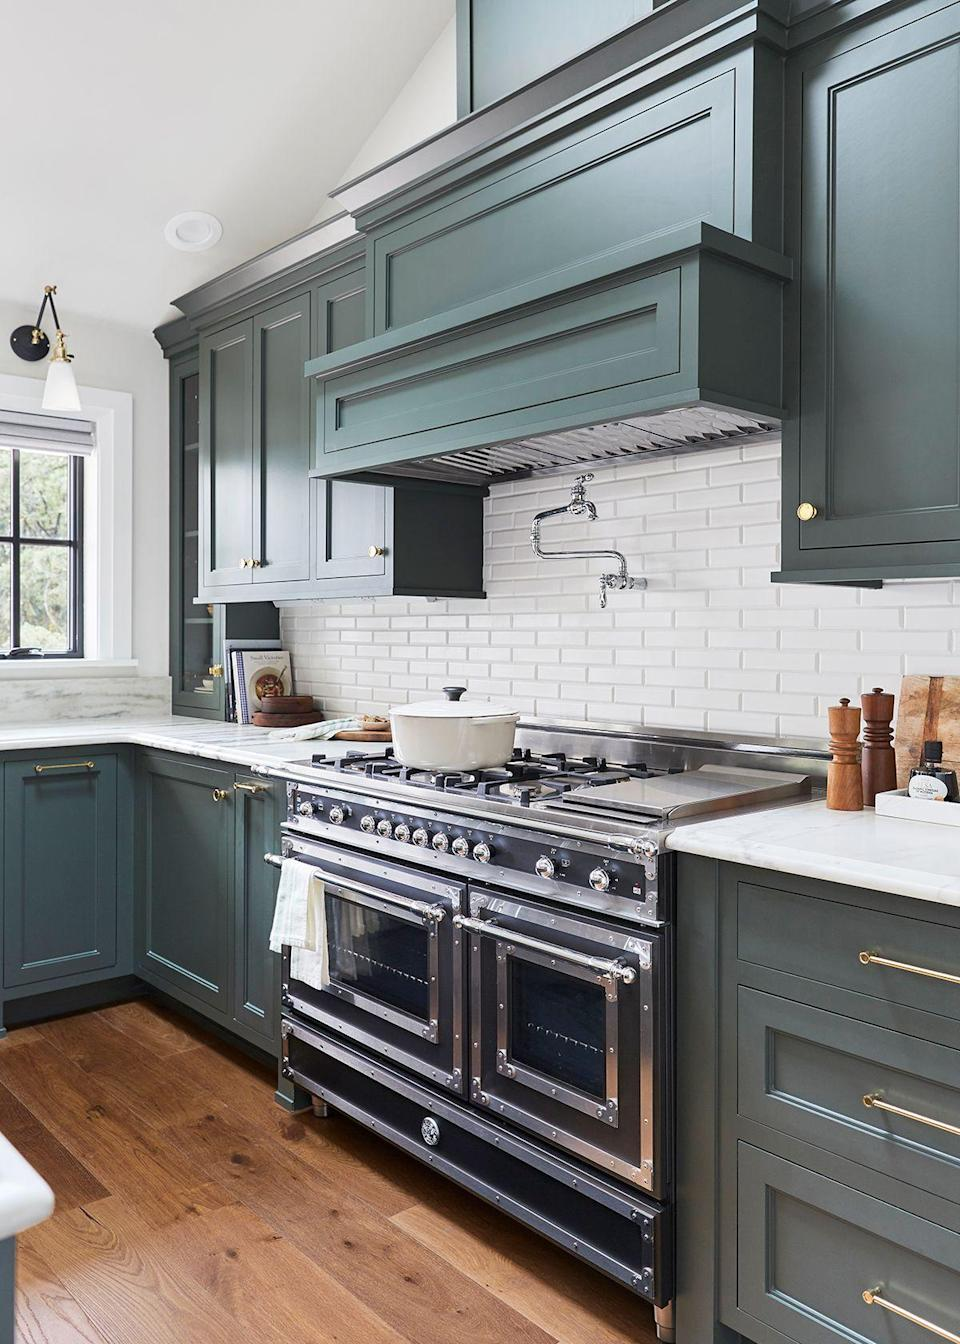 The kitchen is very minimal and streamlined, without a lot of fuss. Fashion with function was the philosophy here, and it works.